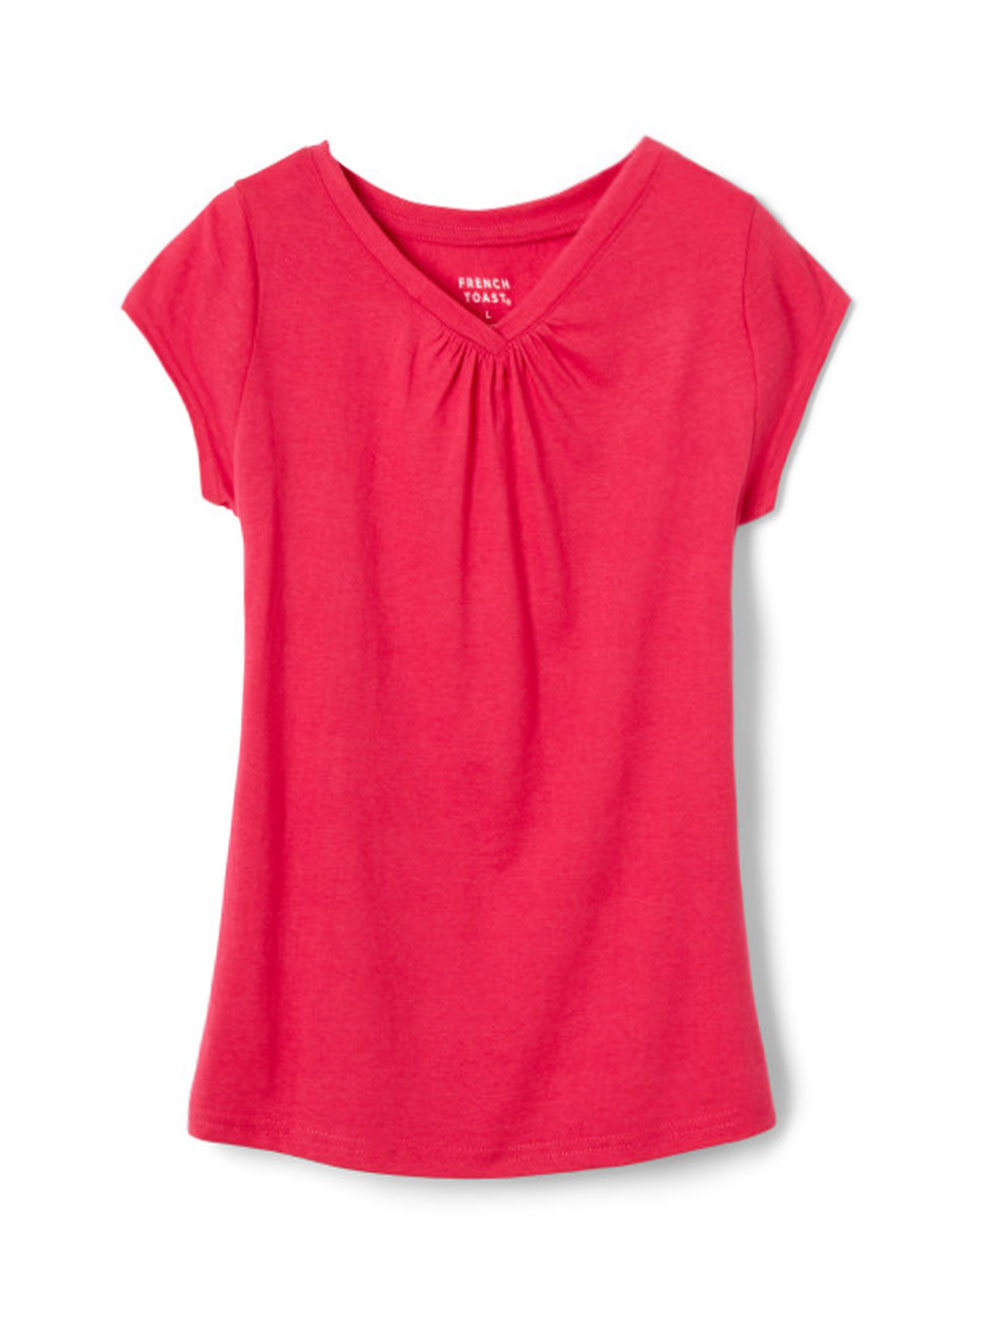 Image of French Toast Little Girls Toddler Ruched VNeck TShirt Sizes 2T  4T  fuchsia 4t